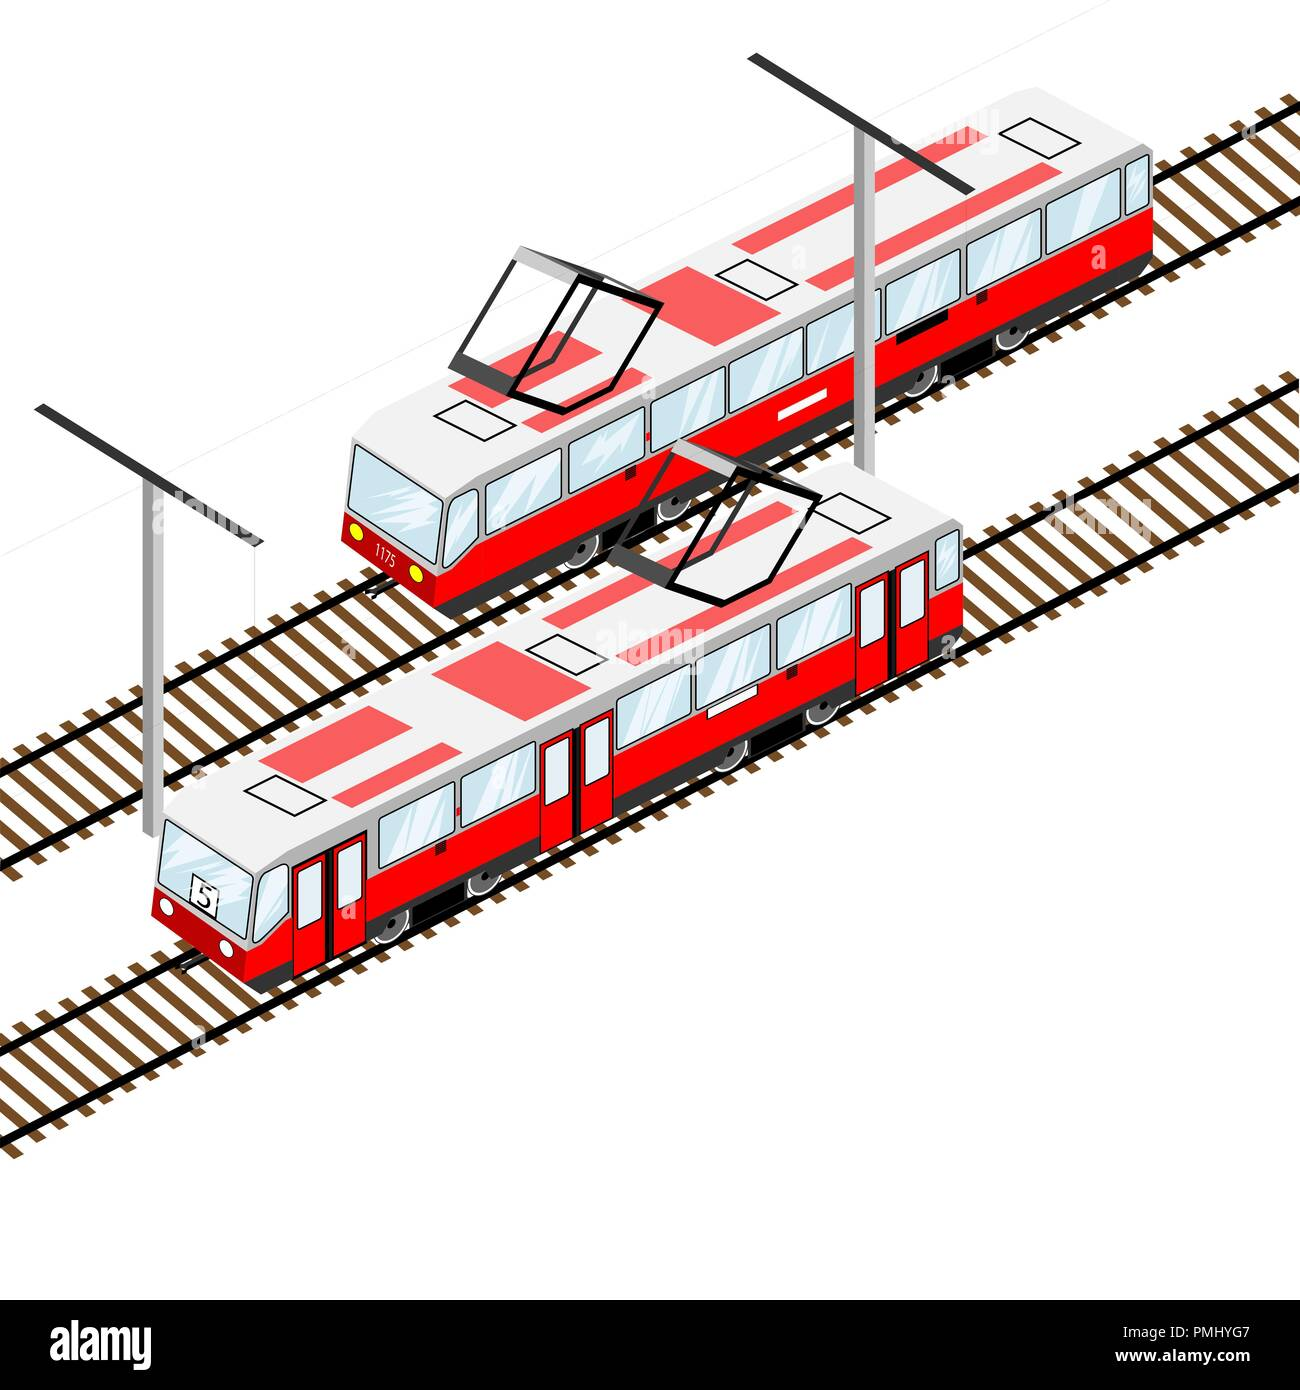 city trams in isometric view - Stock Image